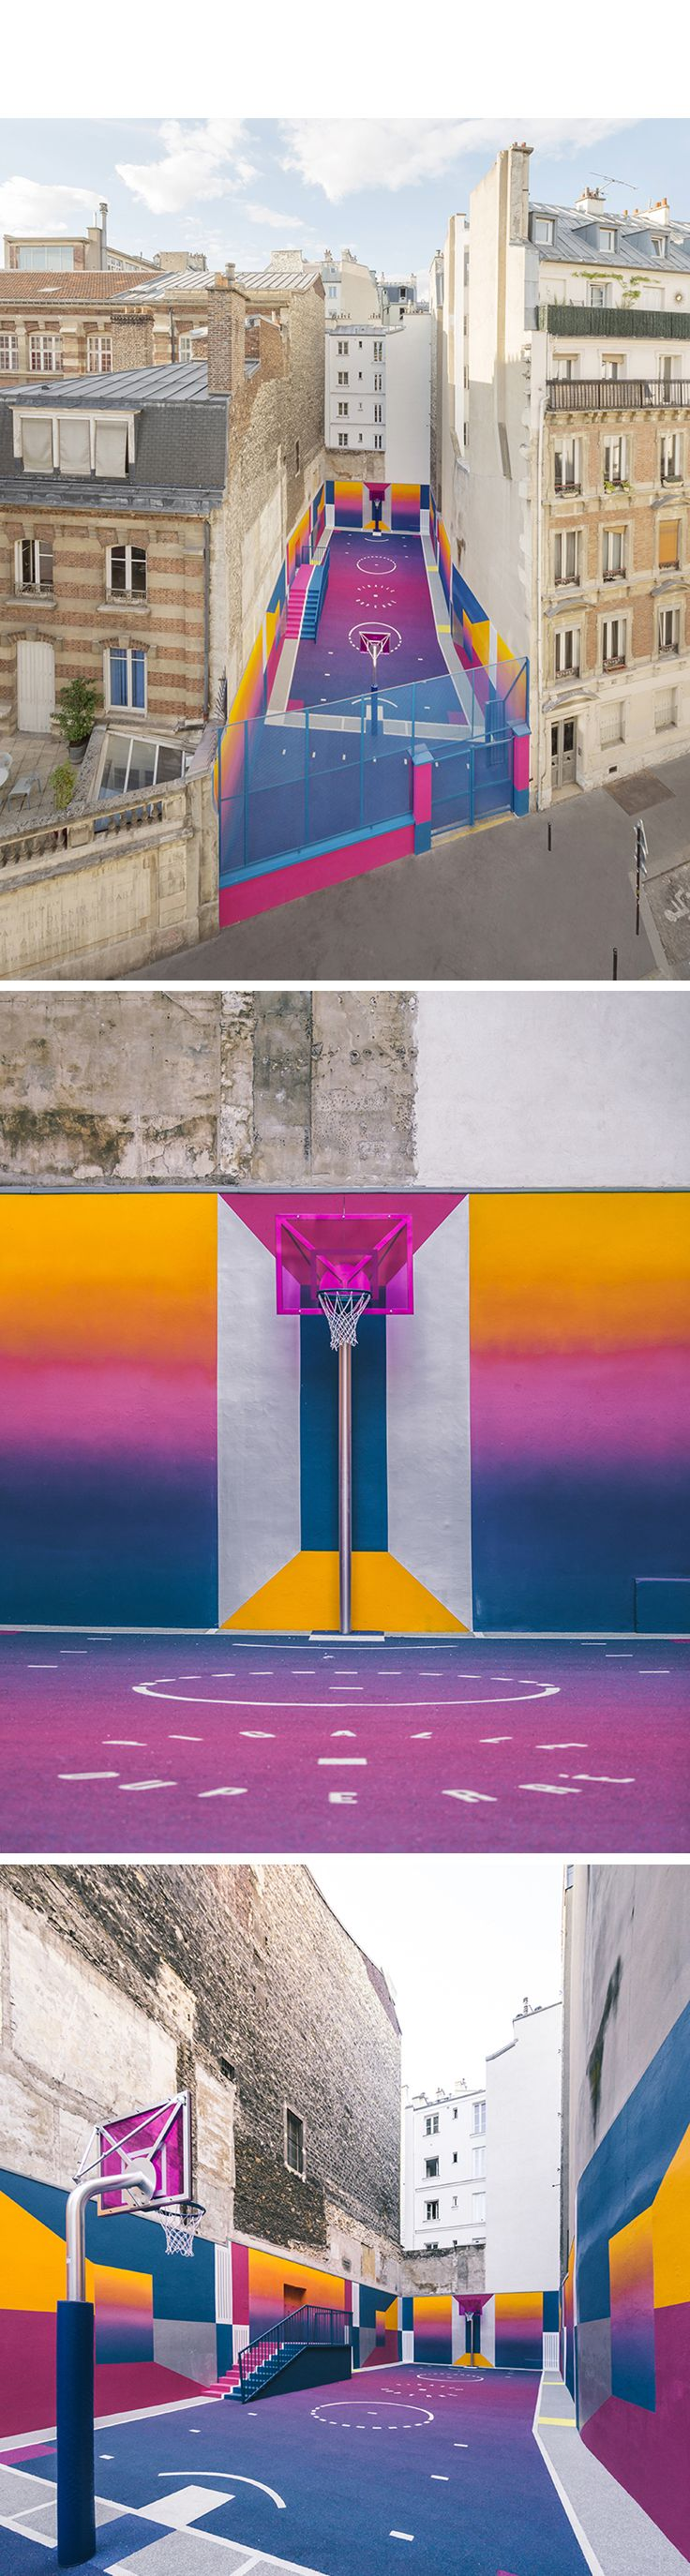 paris' pigalle basketball court canvassed in a gradient of smooth, iridescent hues. #paris #france #basketball #art #streetart